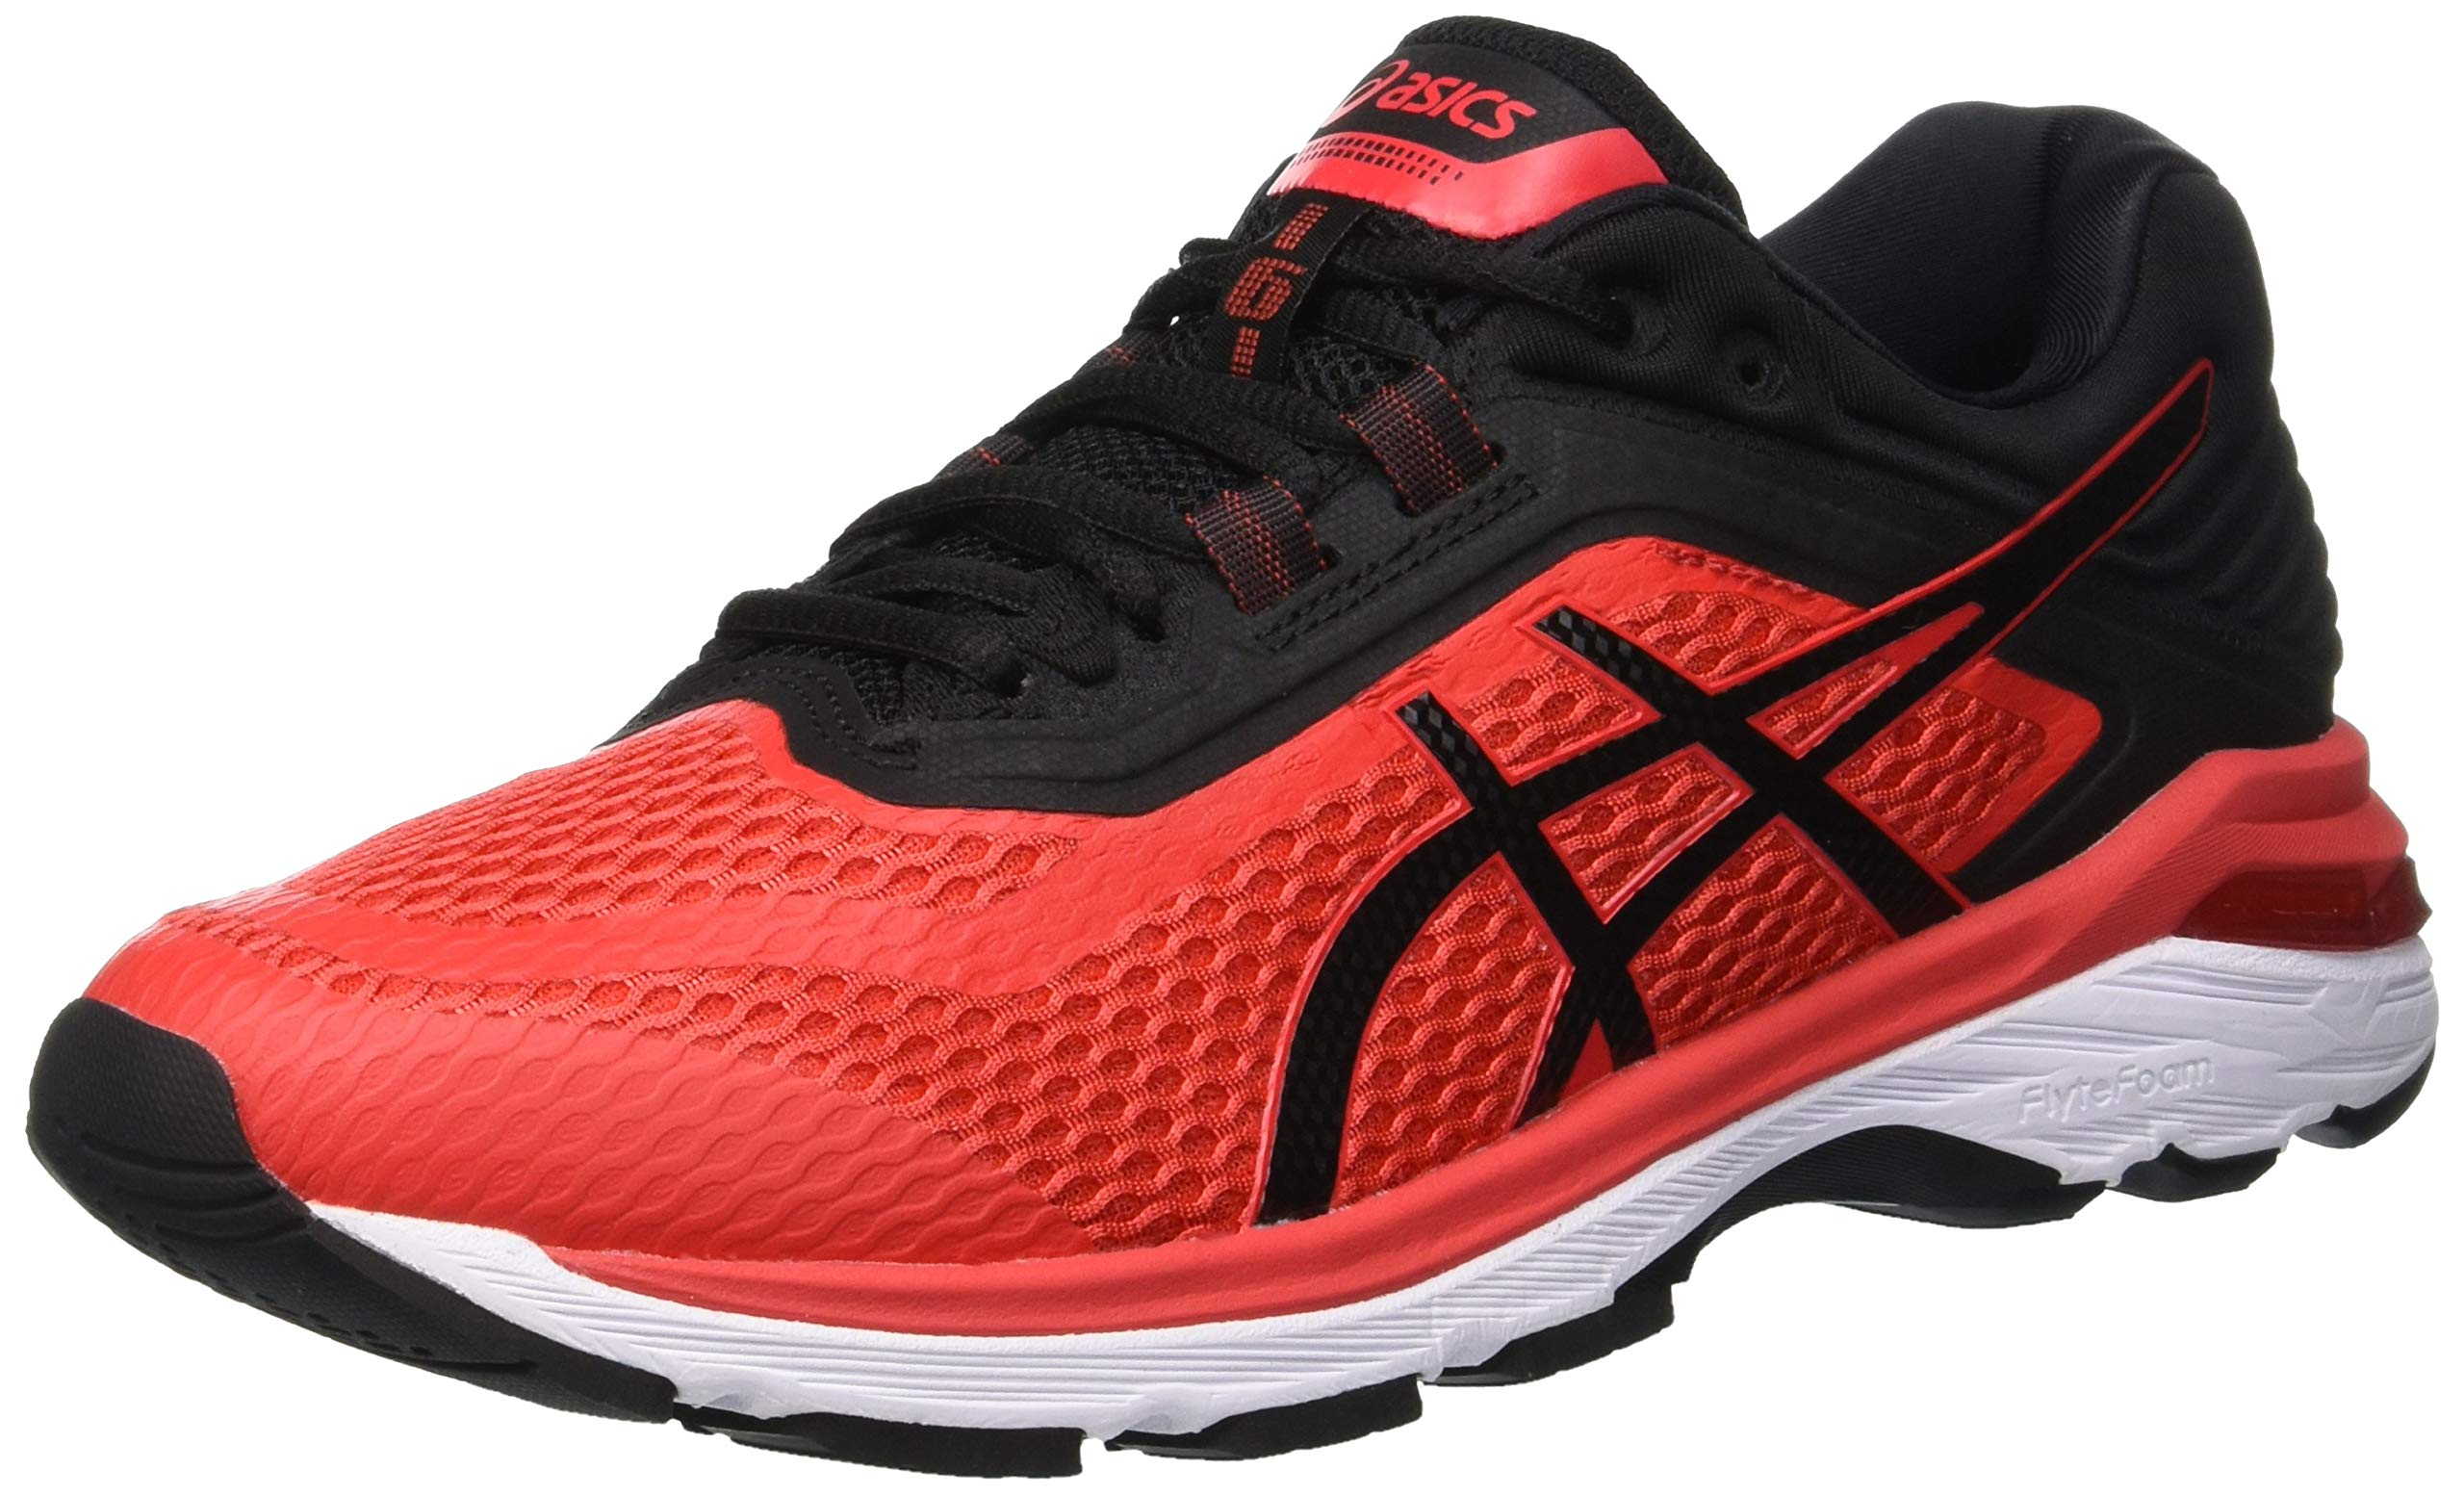 81%2B7HGifL%2BL - ASICS Men's Gt-2000 6 Trail Plasmaguard Running Shoes, 15 UK